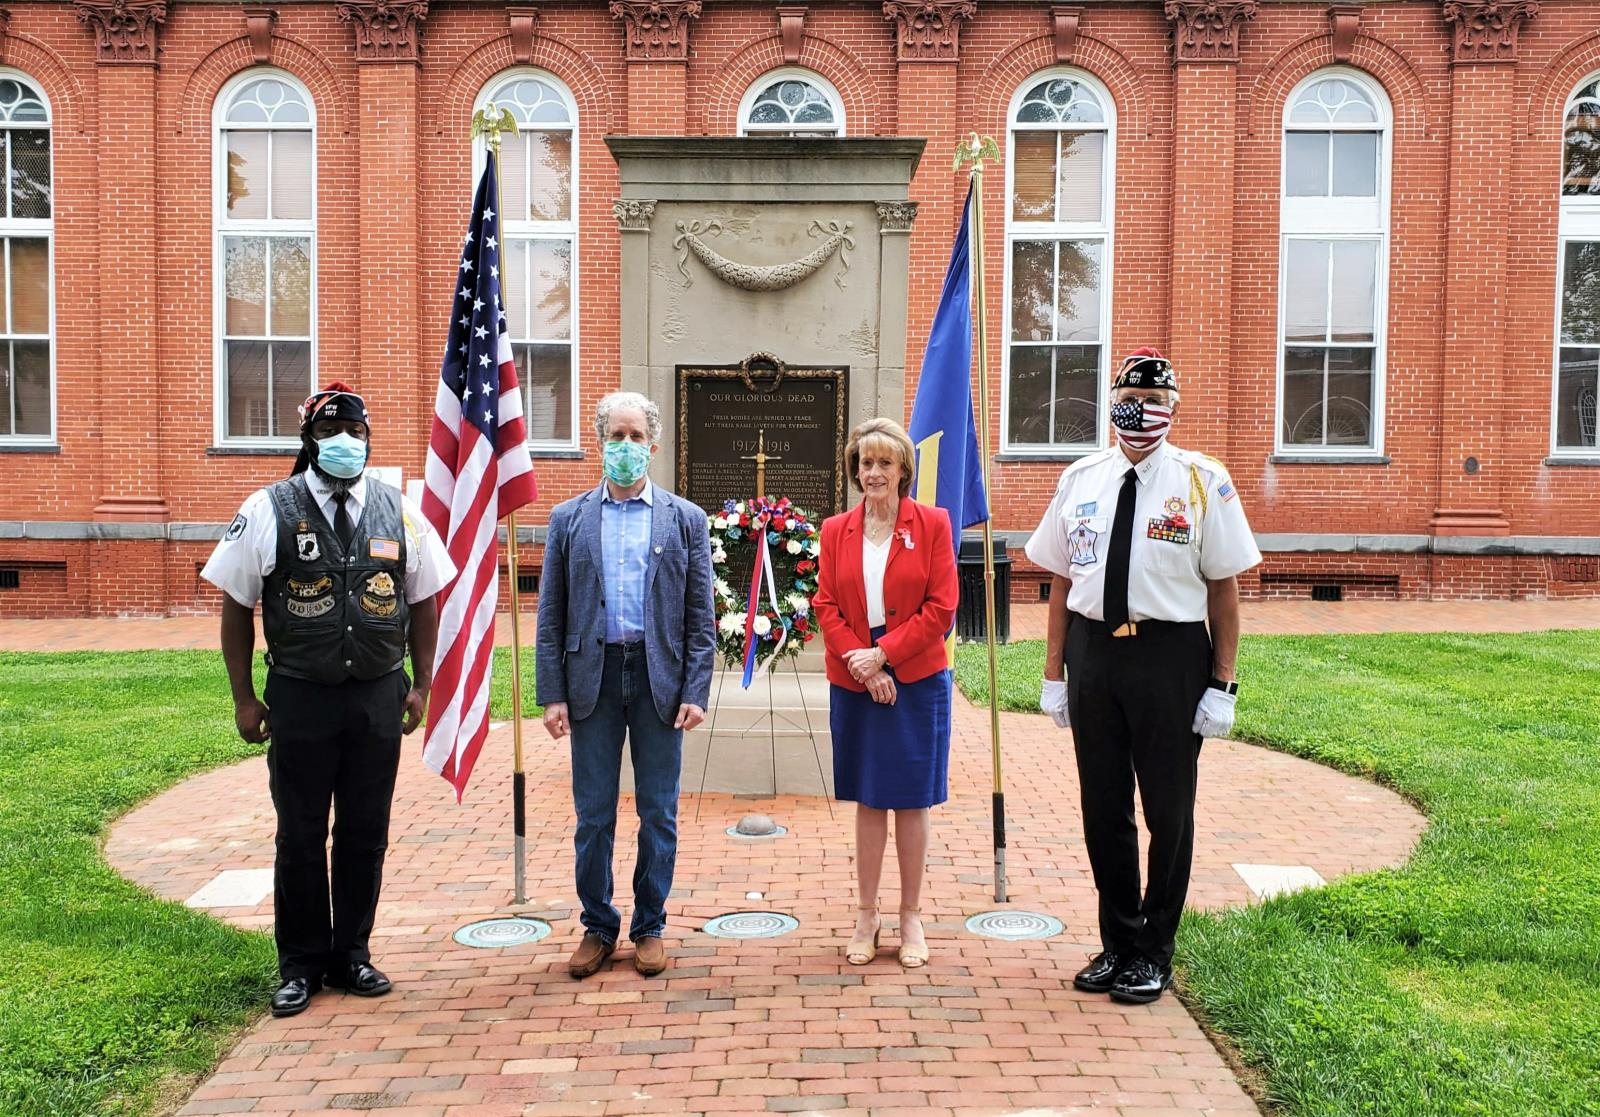 Leesburg Celebrates Memorial Day with Private Observance at Loudoun County Courthouse